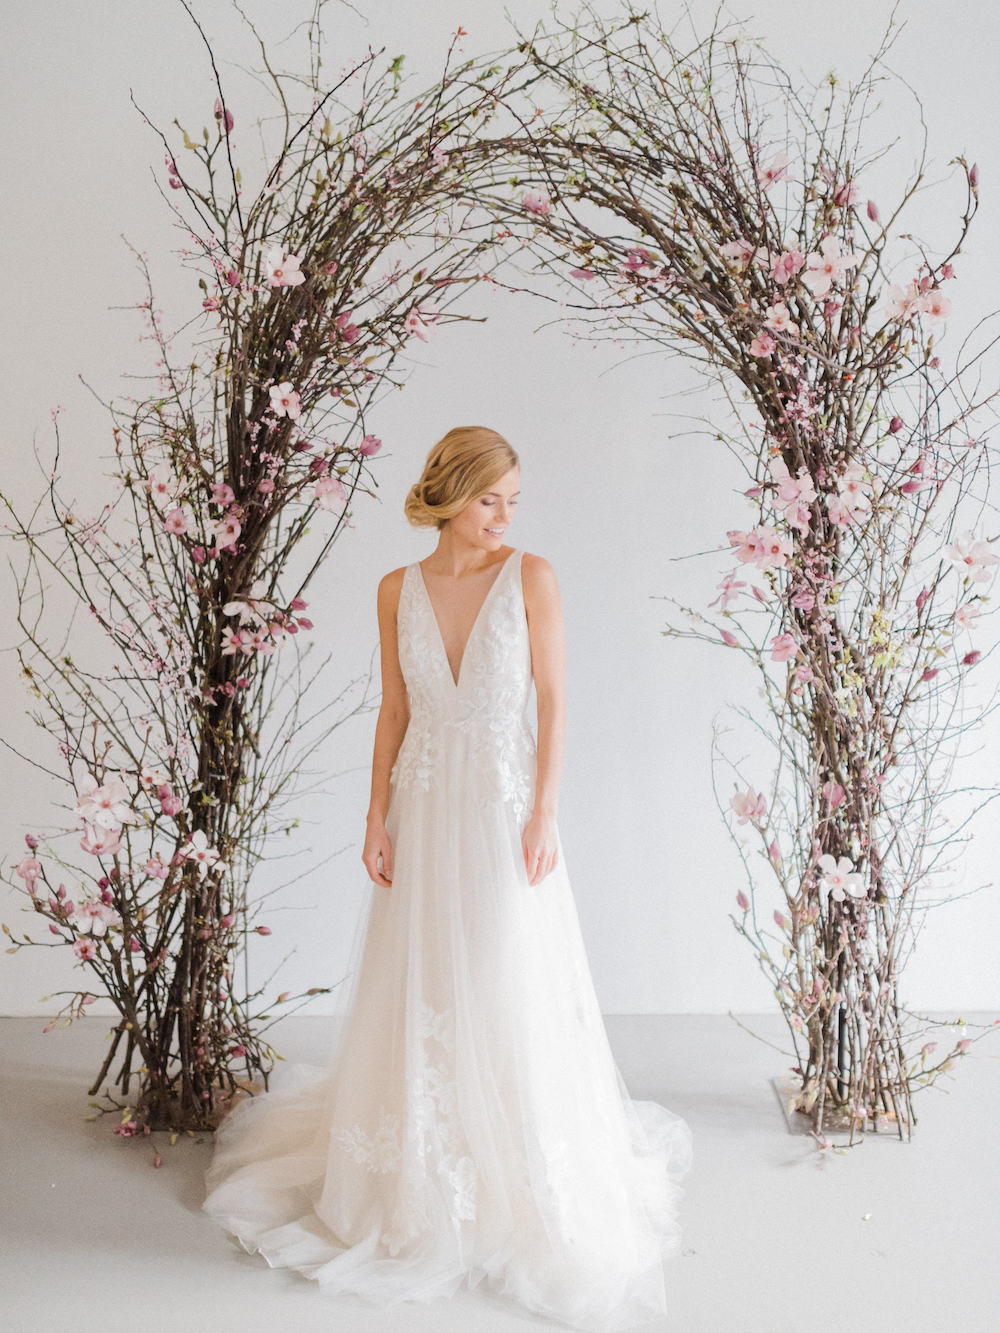 Bride with magnolia wedding arch Luster Floral Design at Sinclair and Moore Workshop, photo by Kristen Honeycutt Photo Co.jpg